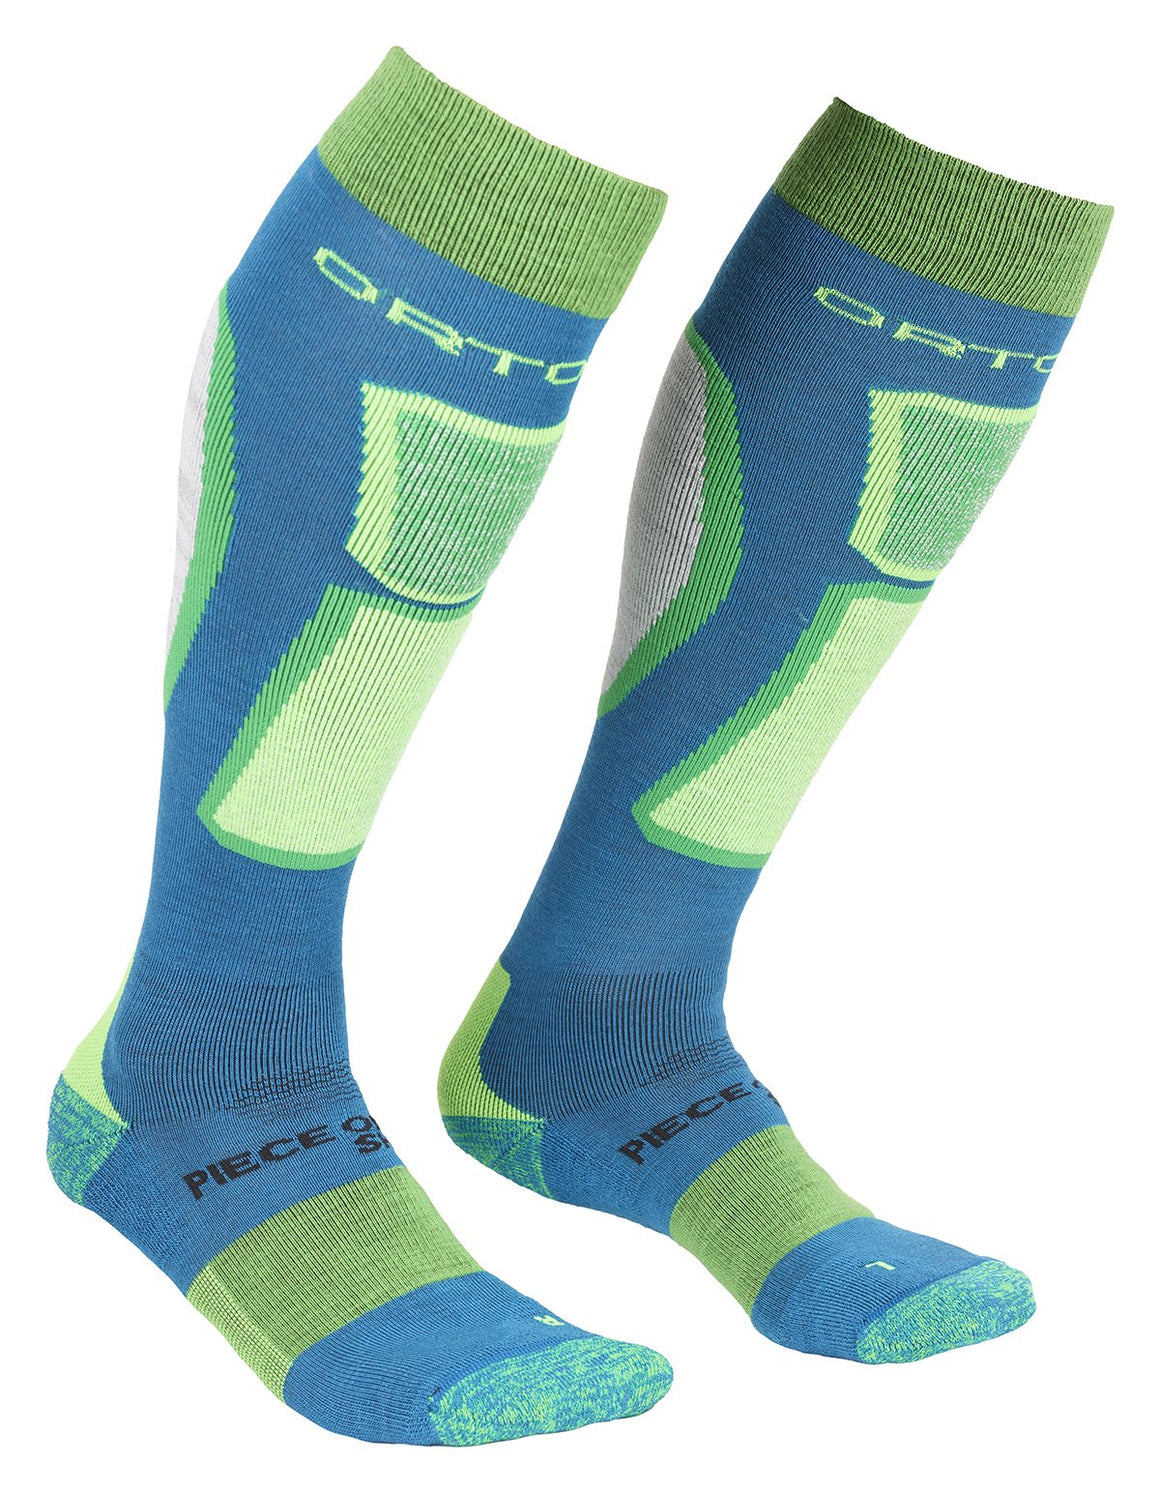 NEW MENS Ortovox Ski and Snowboard Merino Wool Rock n Wool Socks